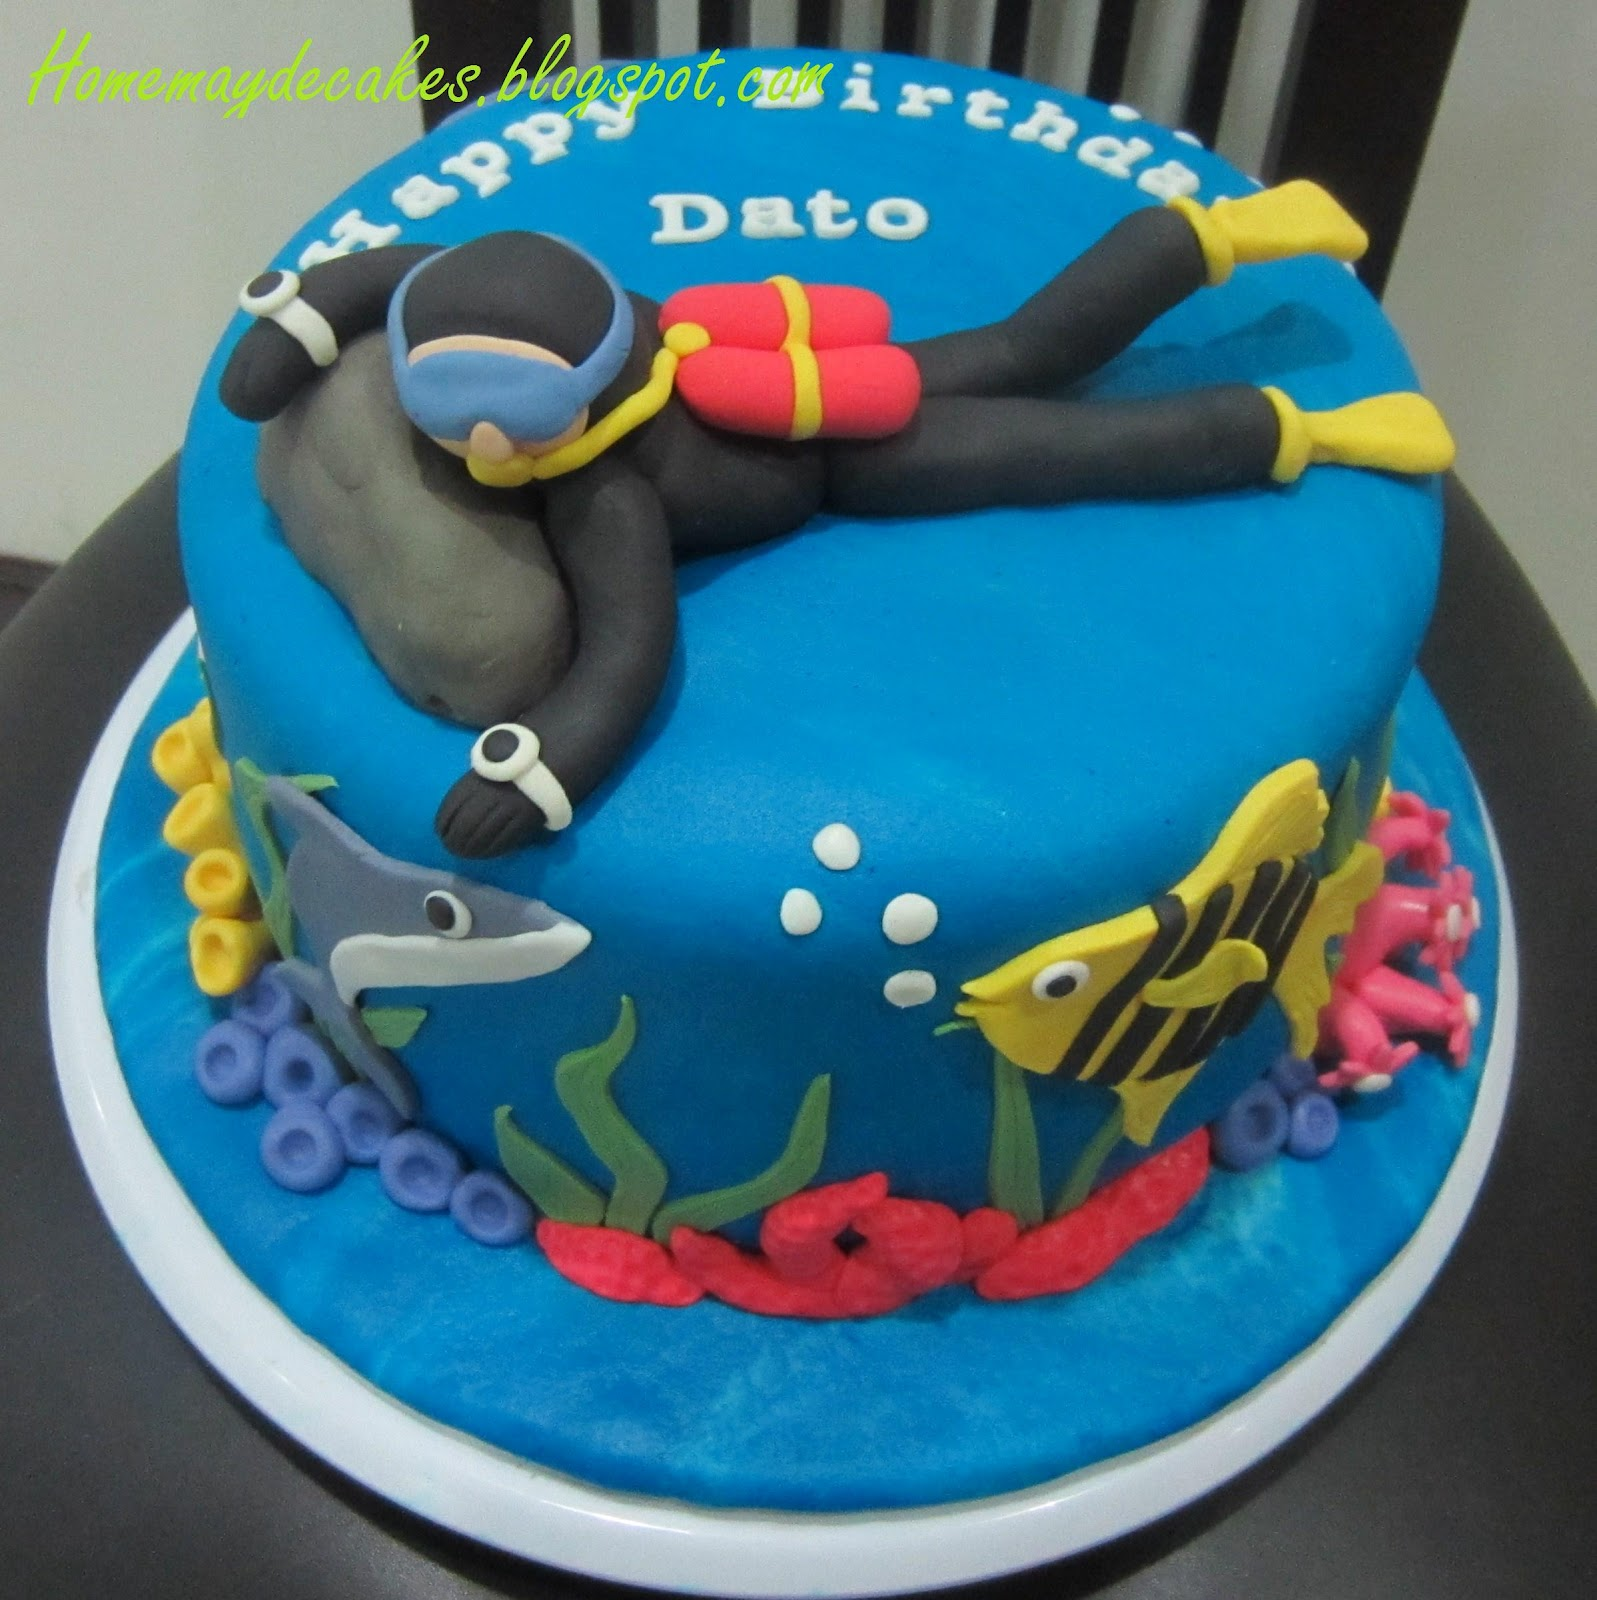 The Making Scuba Dude Cake and his Underwater friends & Home Mayu0027de Cakes: The Making: Scuba Dude Cake and his Underwater ...